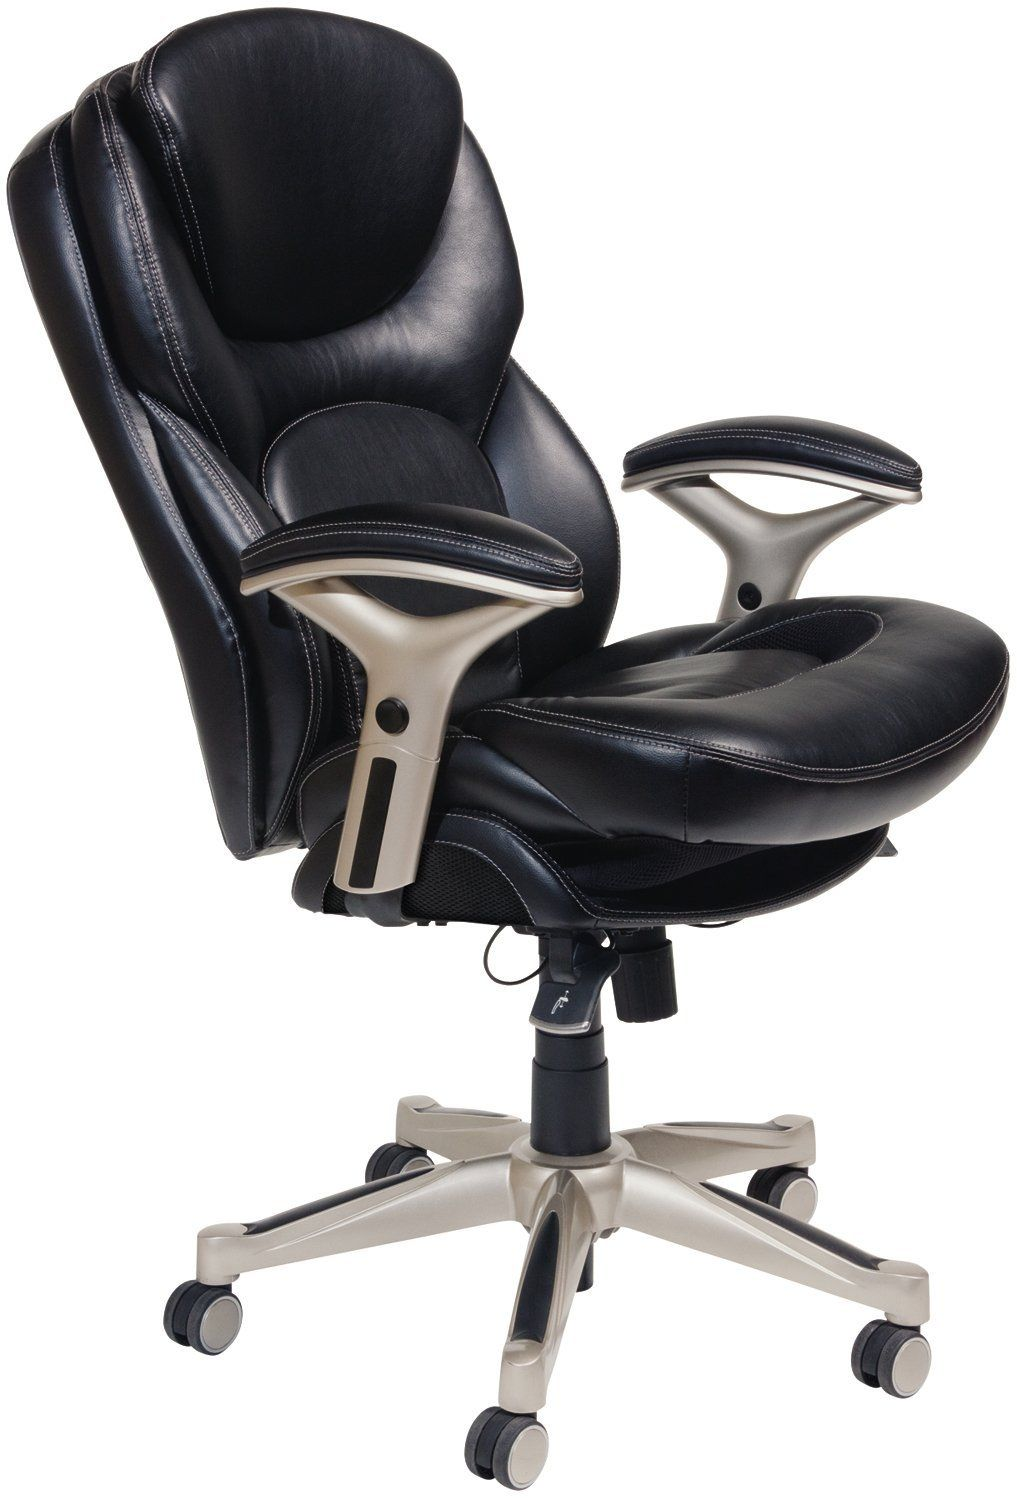 Comfortable office chairs for bad backs country home office